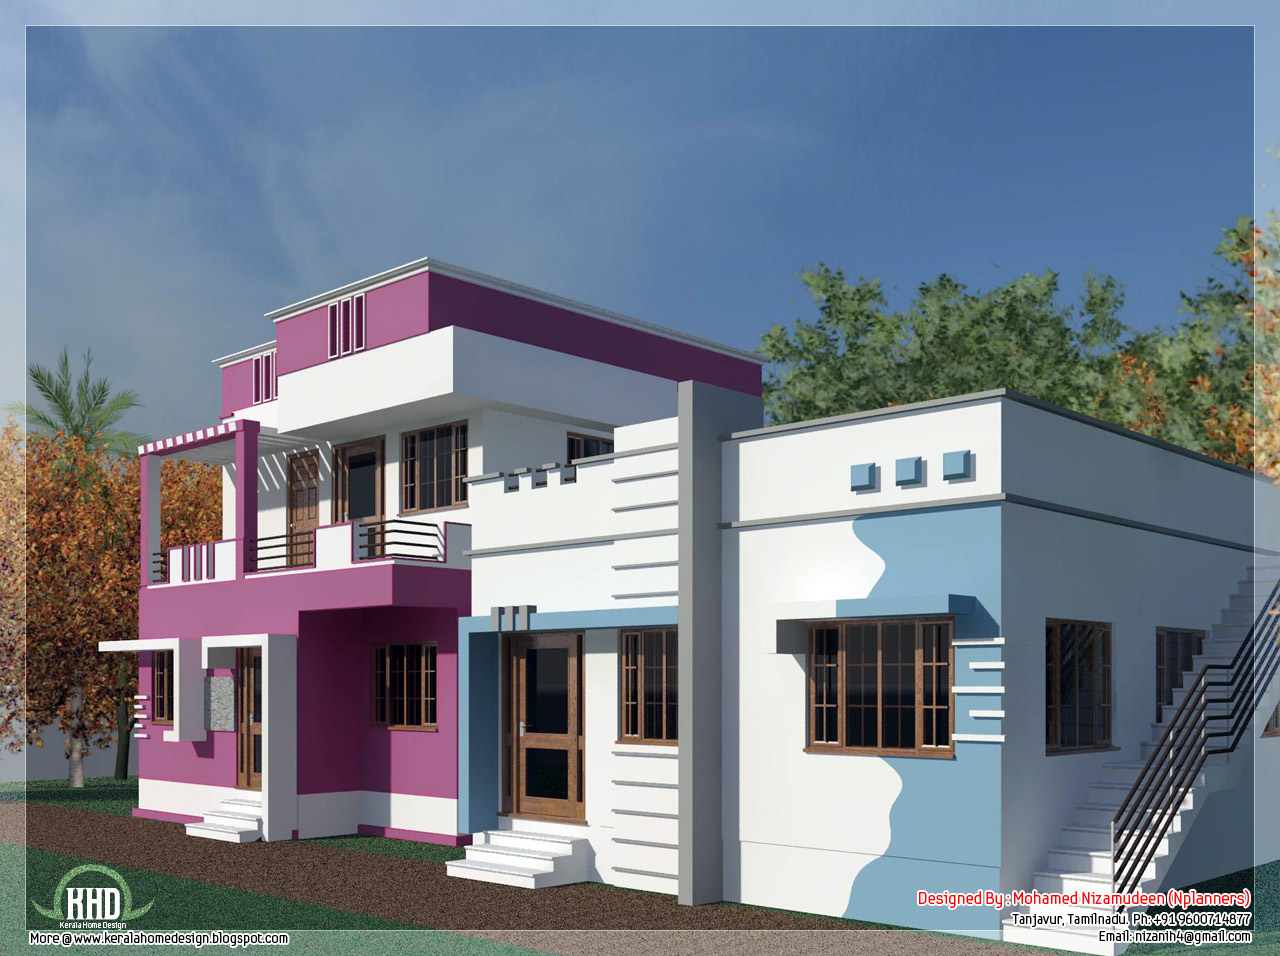 Tamilnadu model home design in 3000 indian house for South indian model house plan